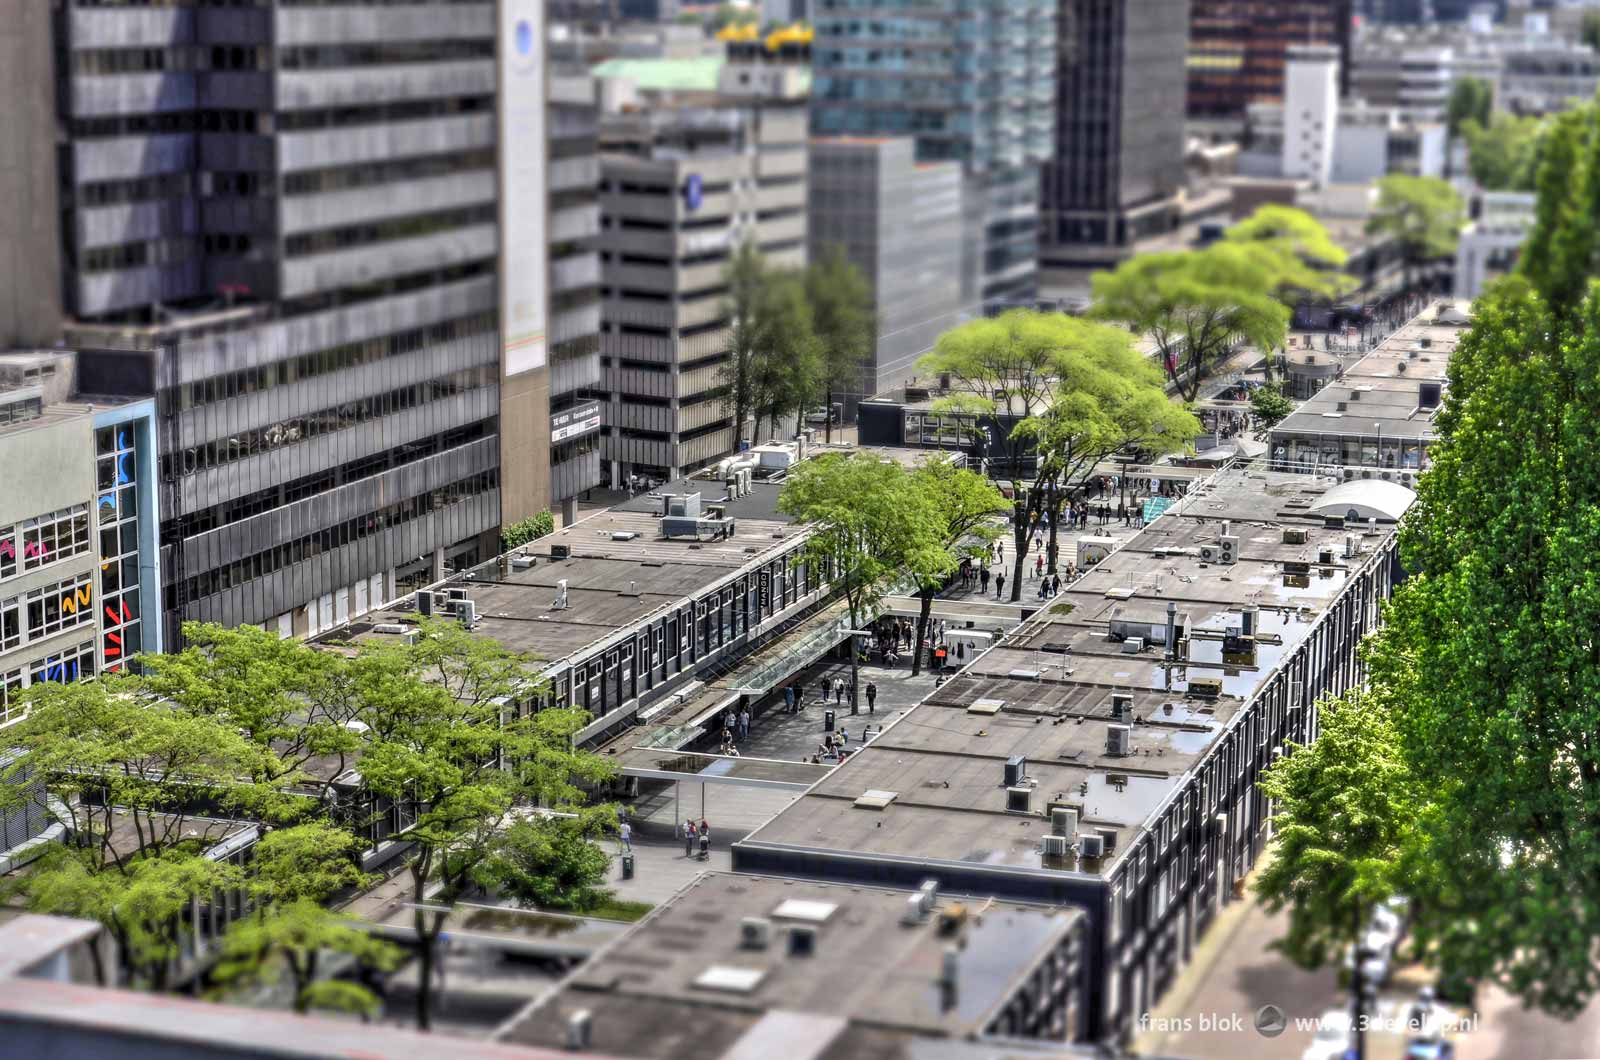 The Miniworld or Madurodam effect on a photo of the Lijnbaan shopping mall in Rotterdam made during the Rotterdam Rooftop Days